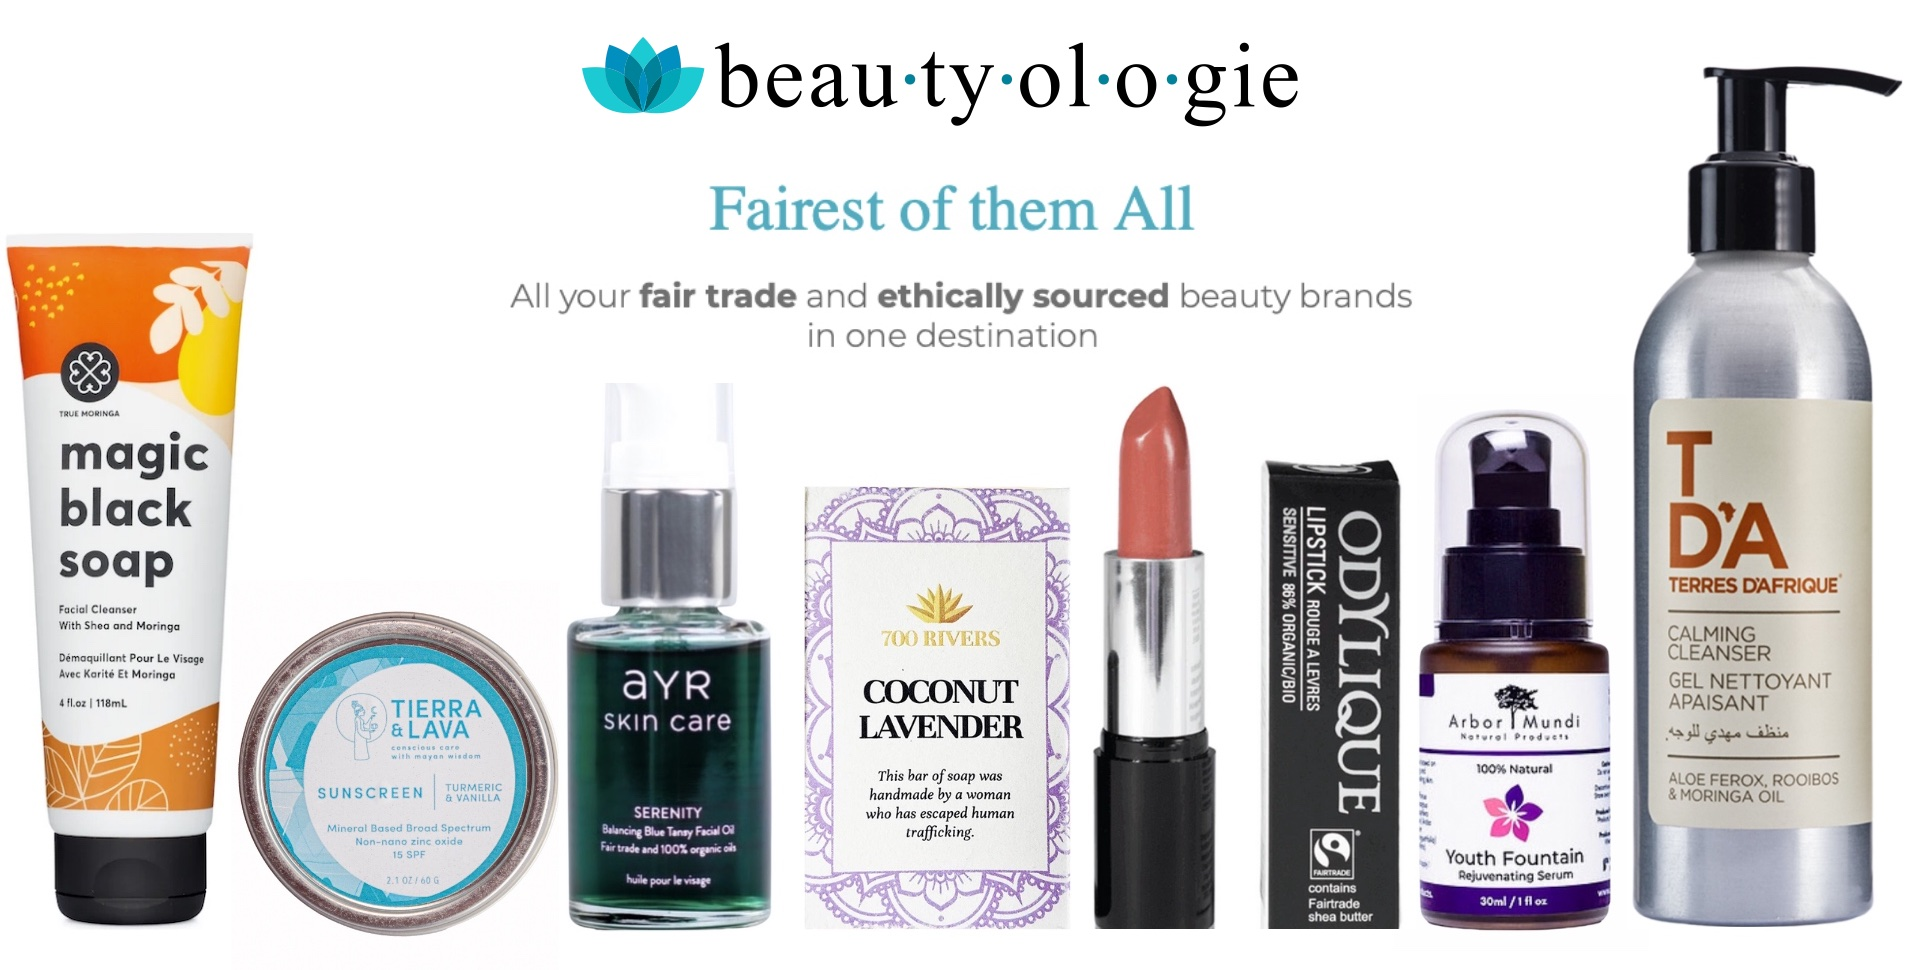 BEAUTYOLOGIE products